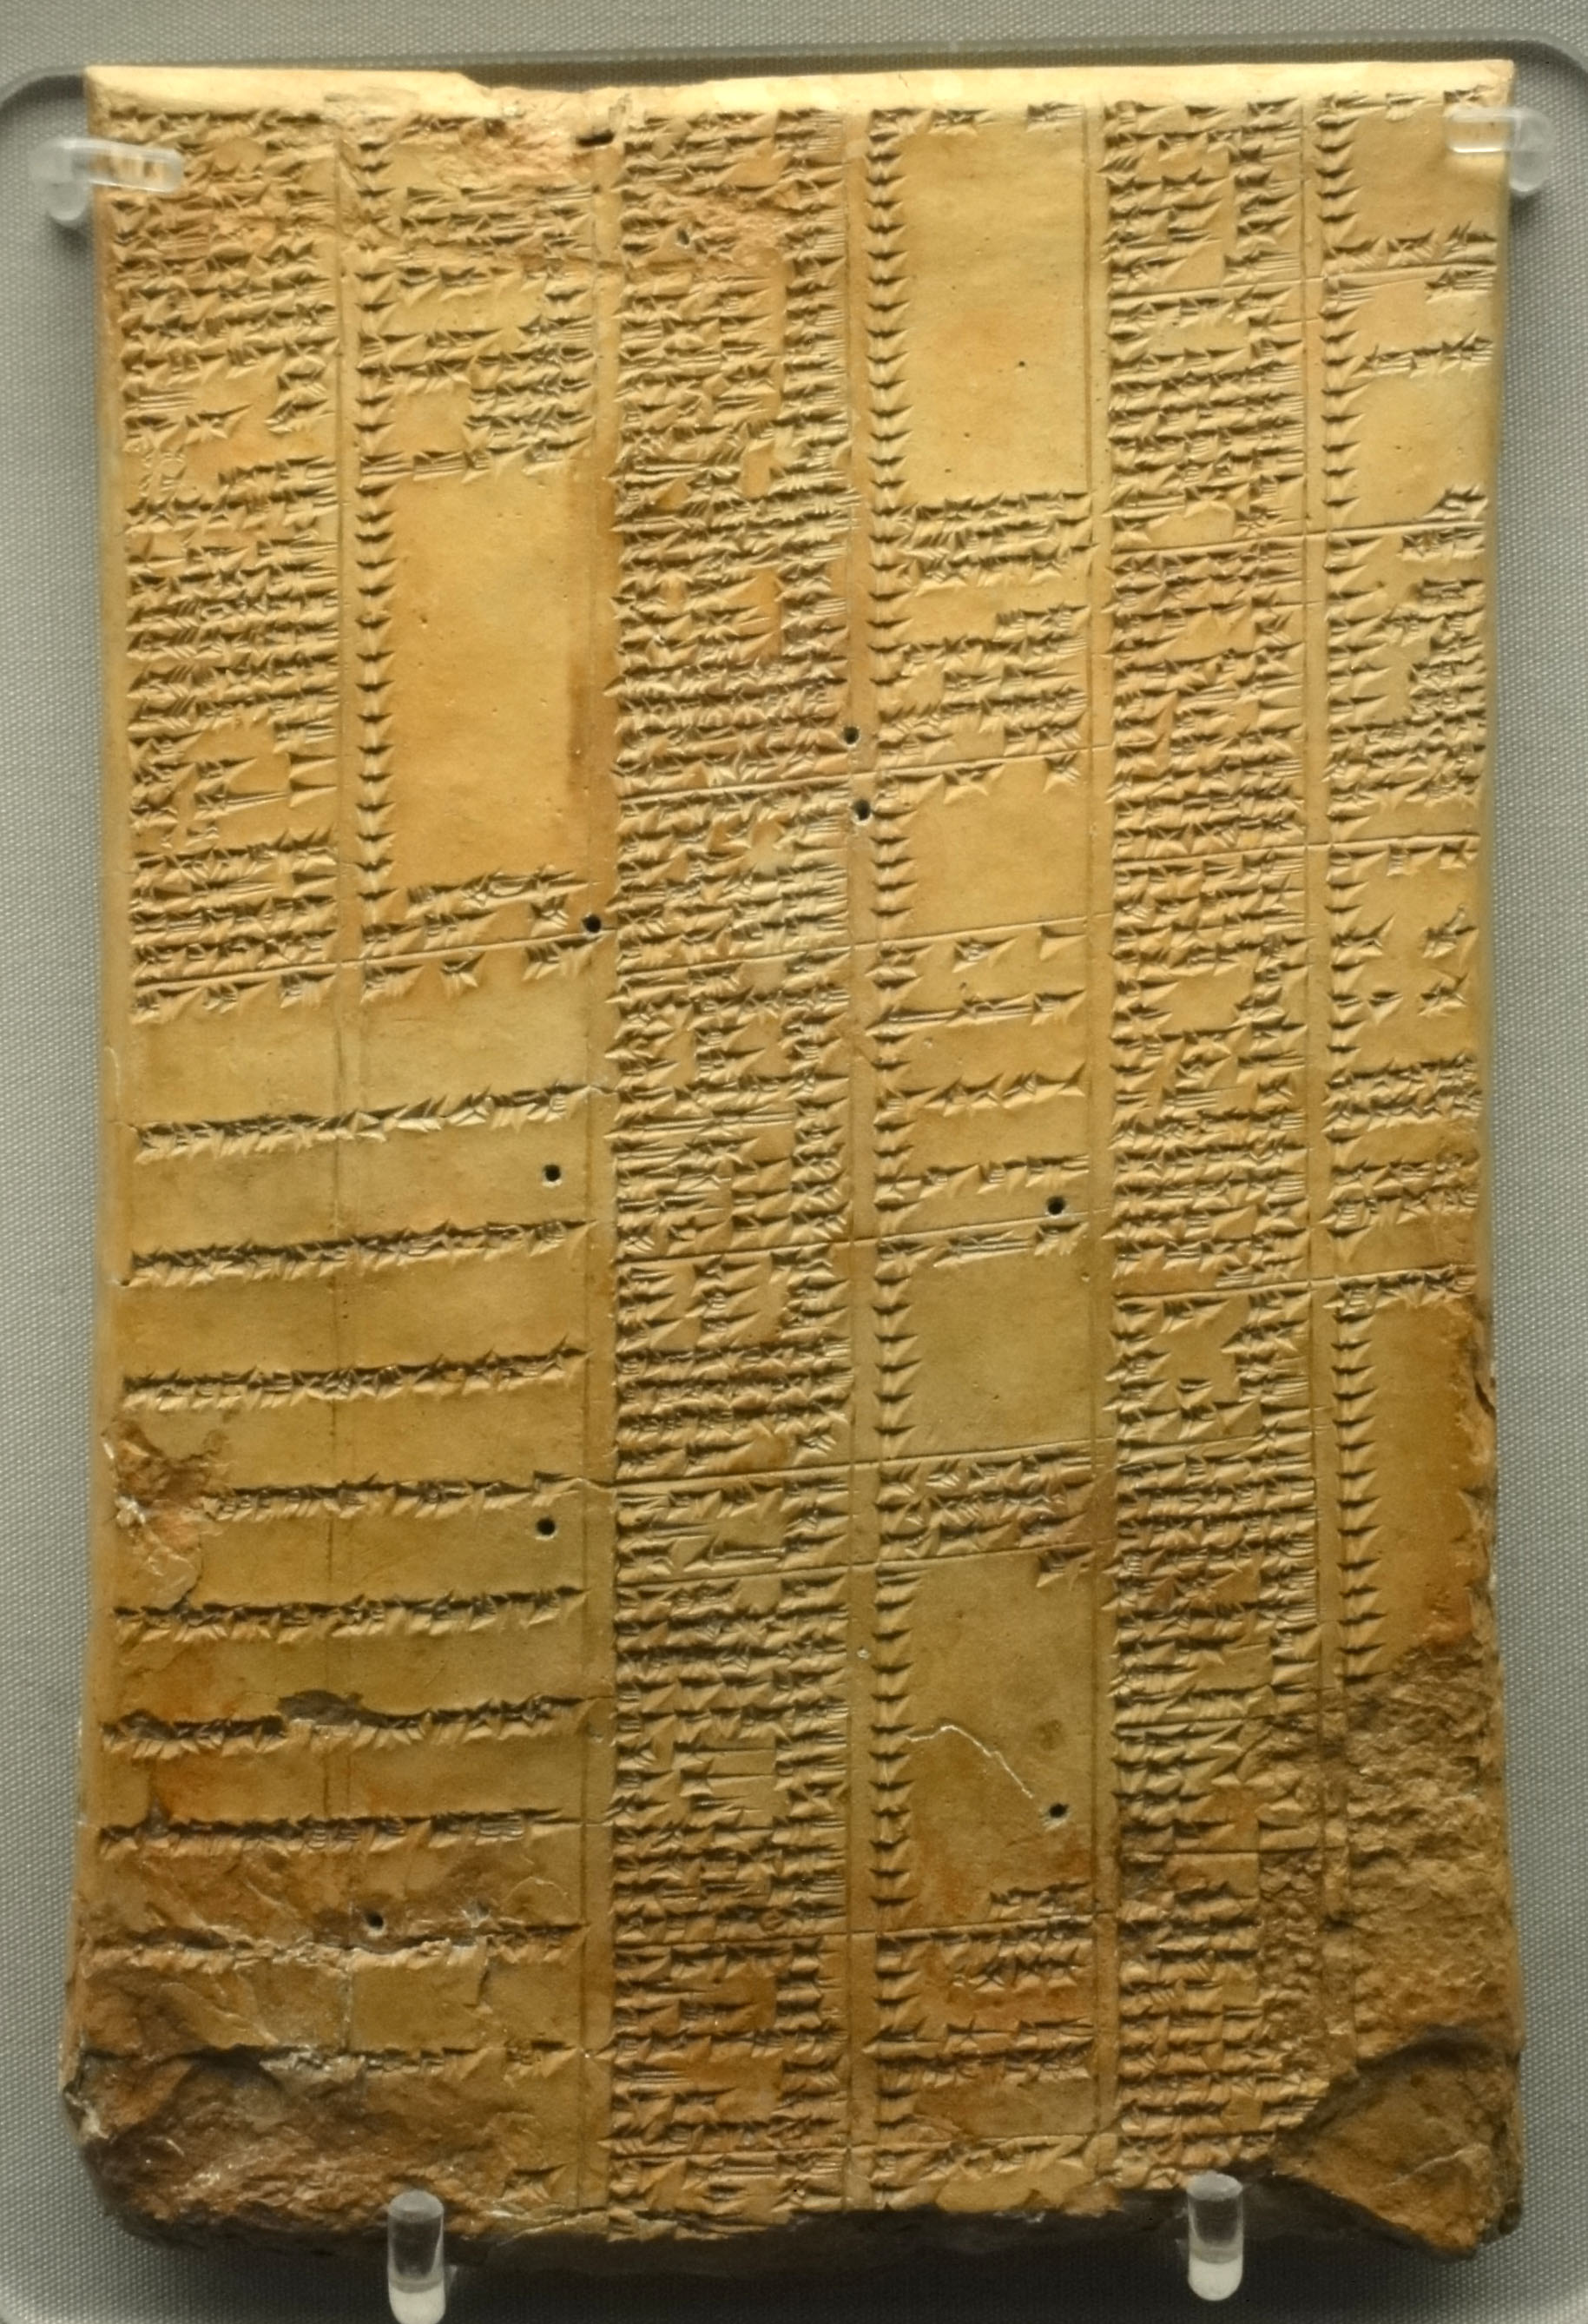 Library_of_Ashurbanipal_synonym_list_tablet